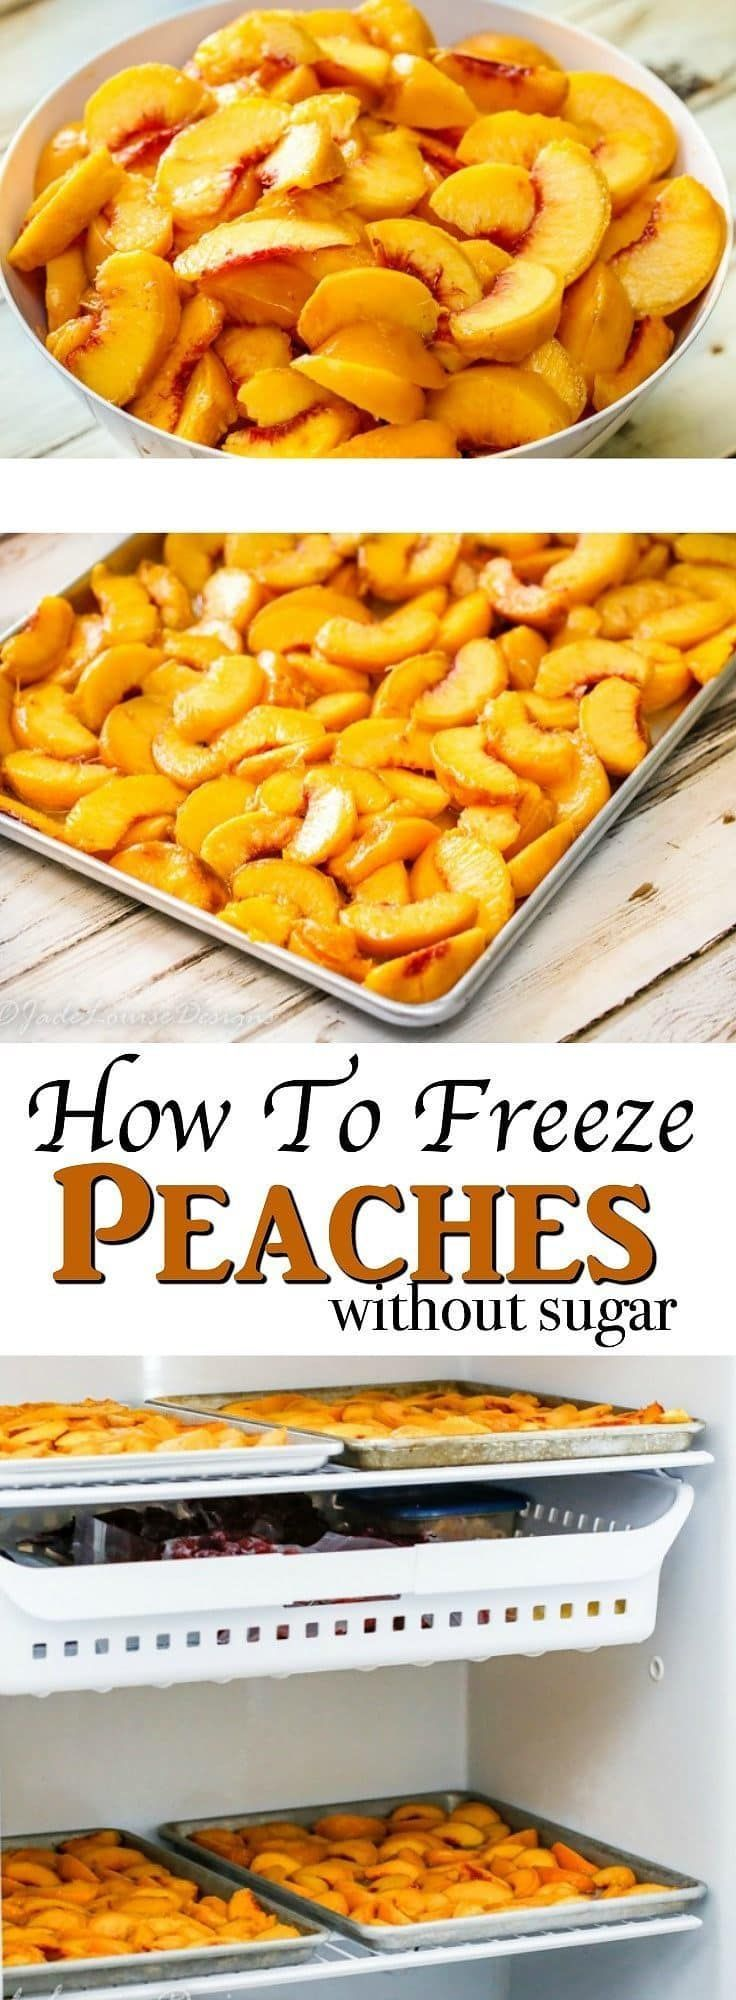 How to freeze peaches without sugar canning recipes